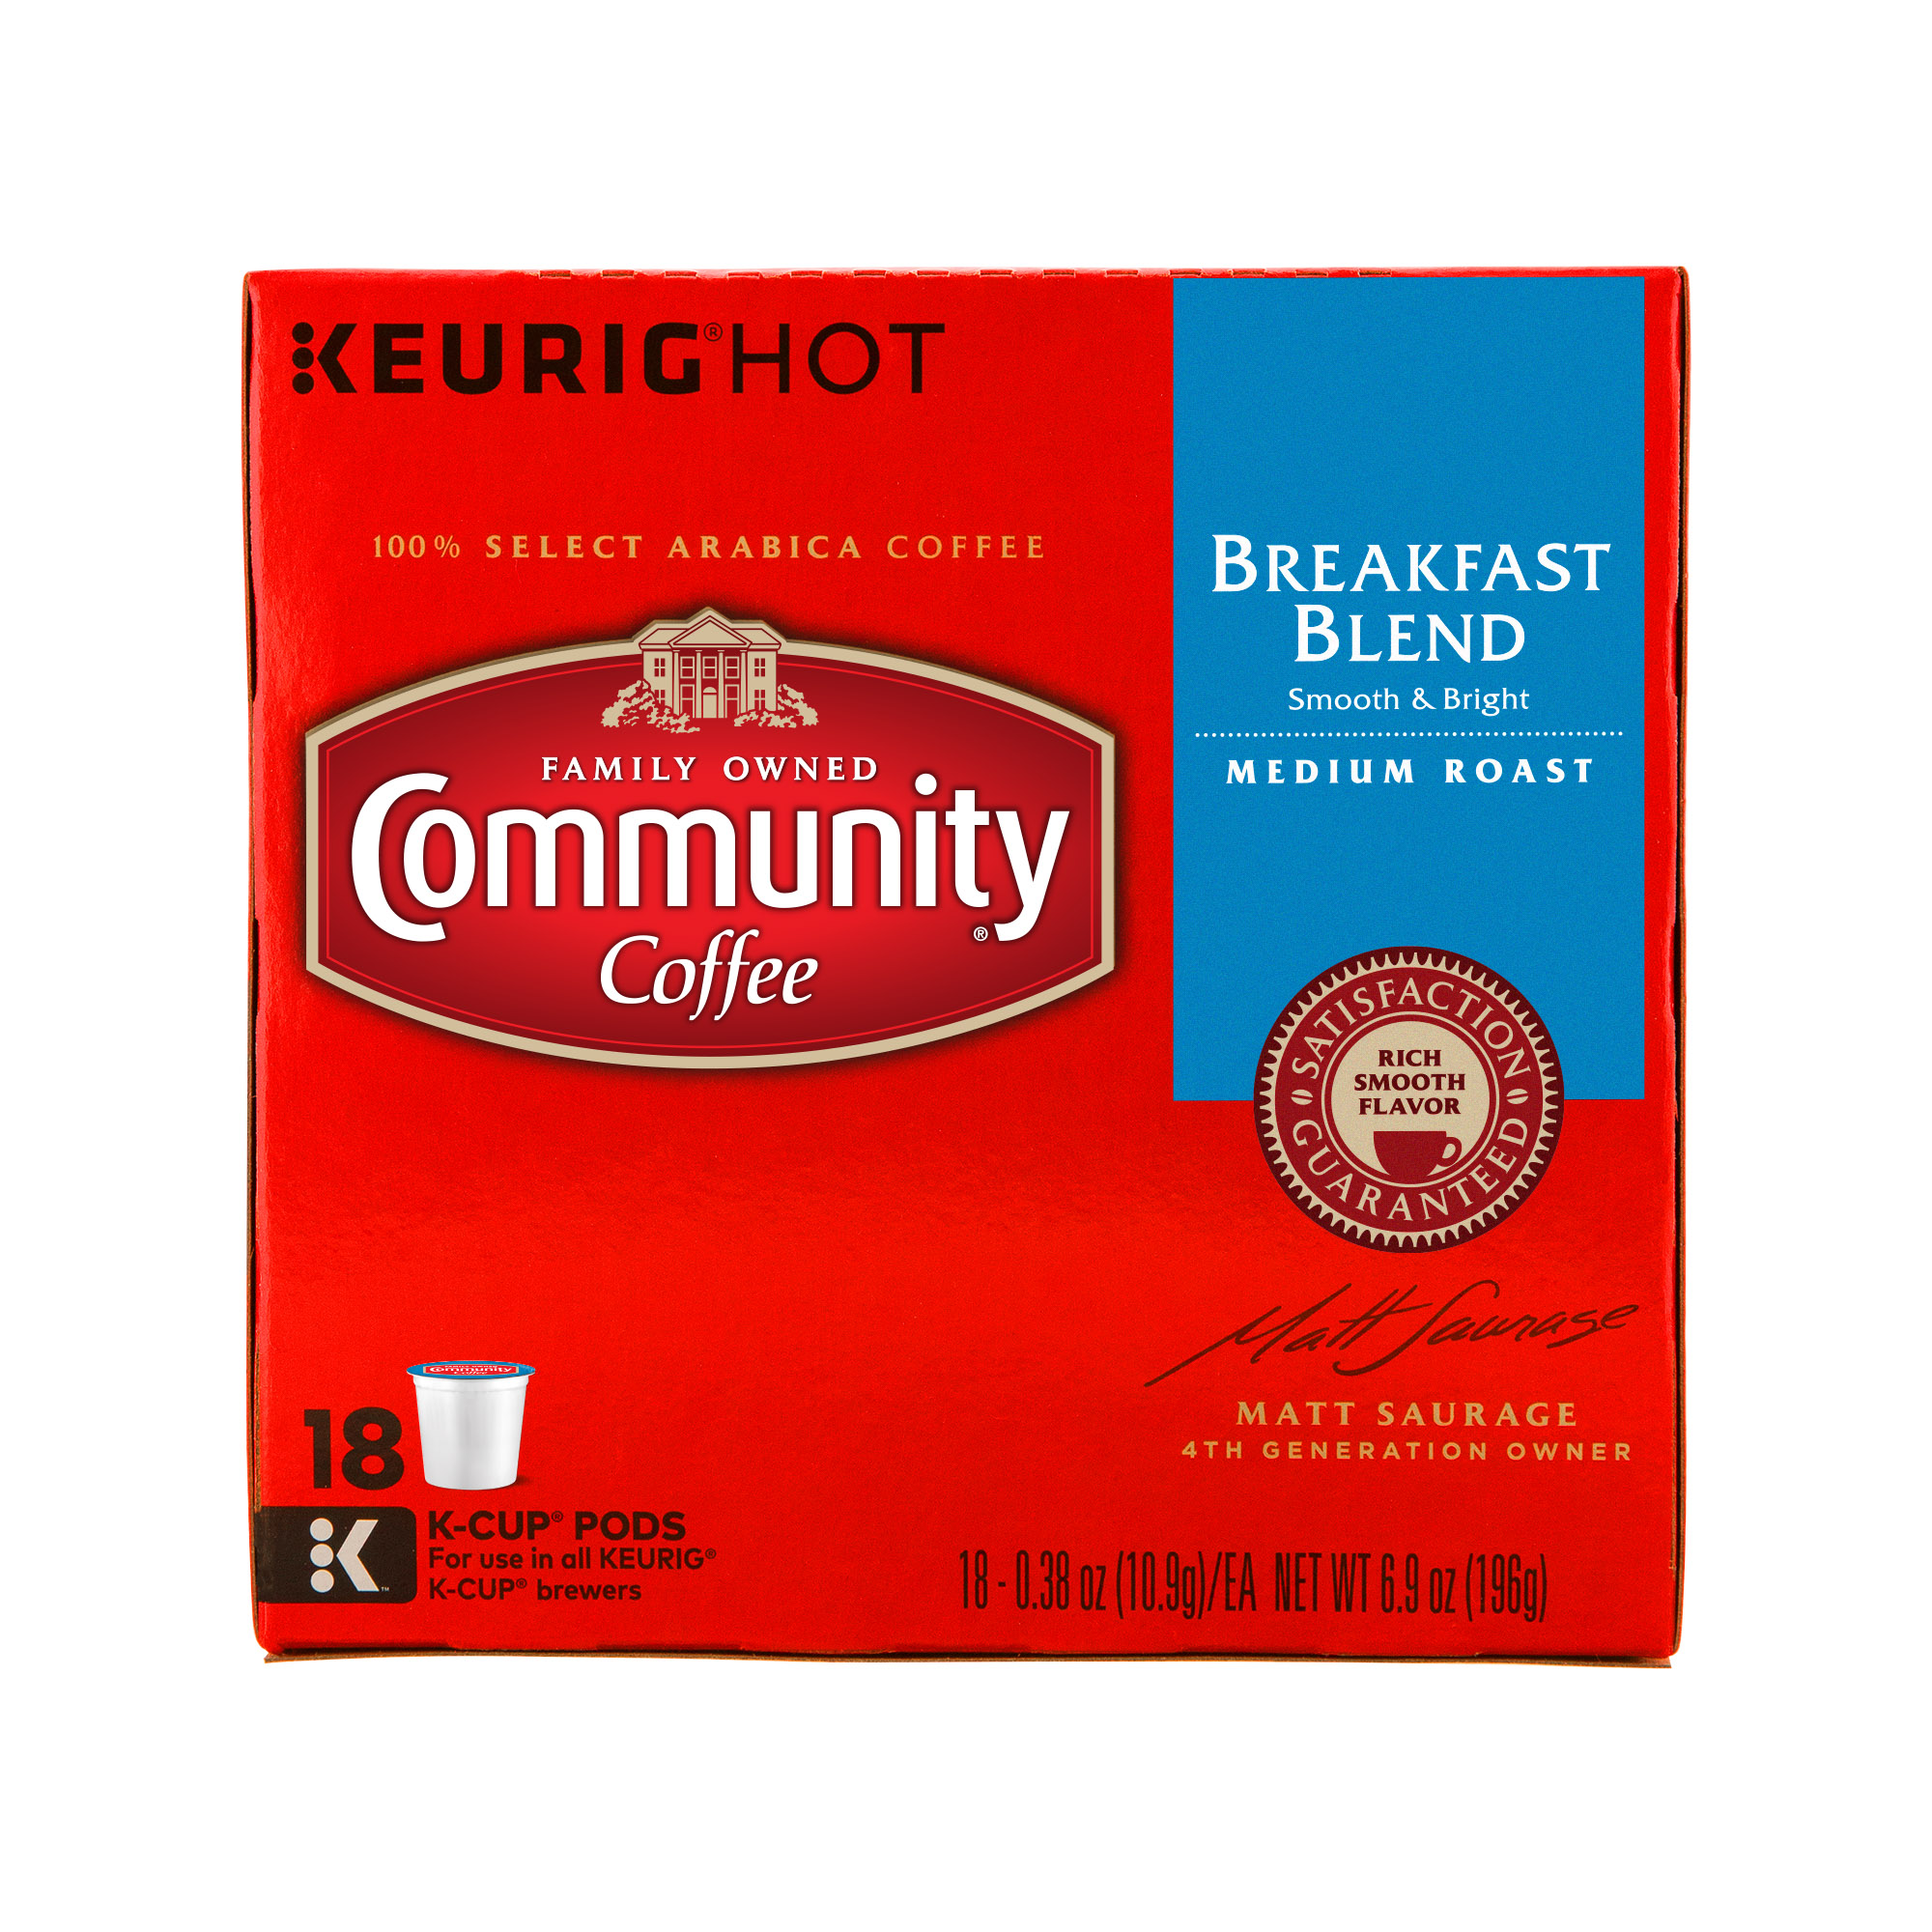 Community Coffee Single-Serve Cups Breakfast Blend Medium Roast Coffee, 18 Count